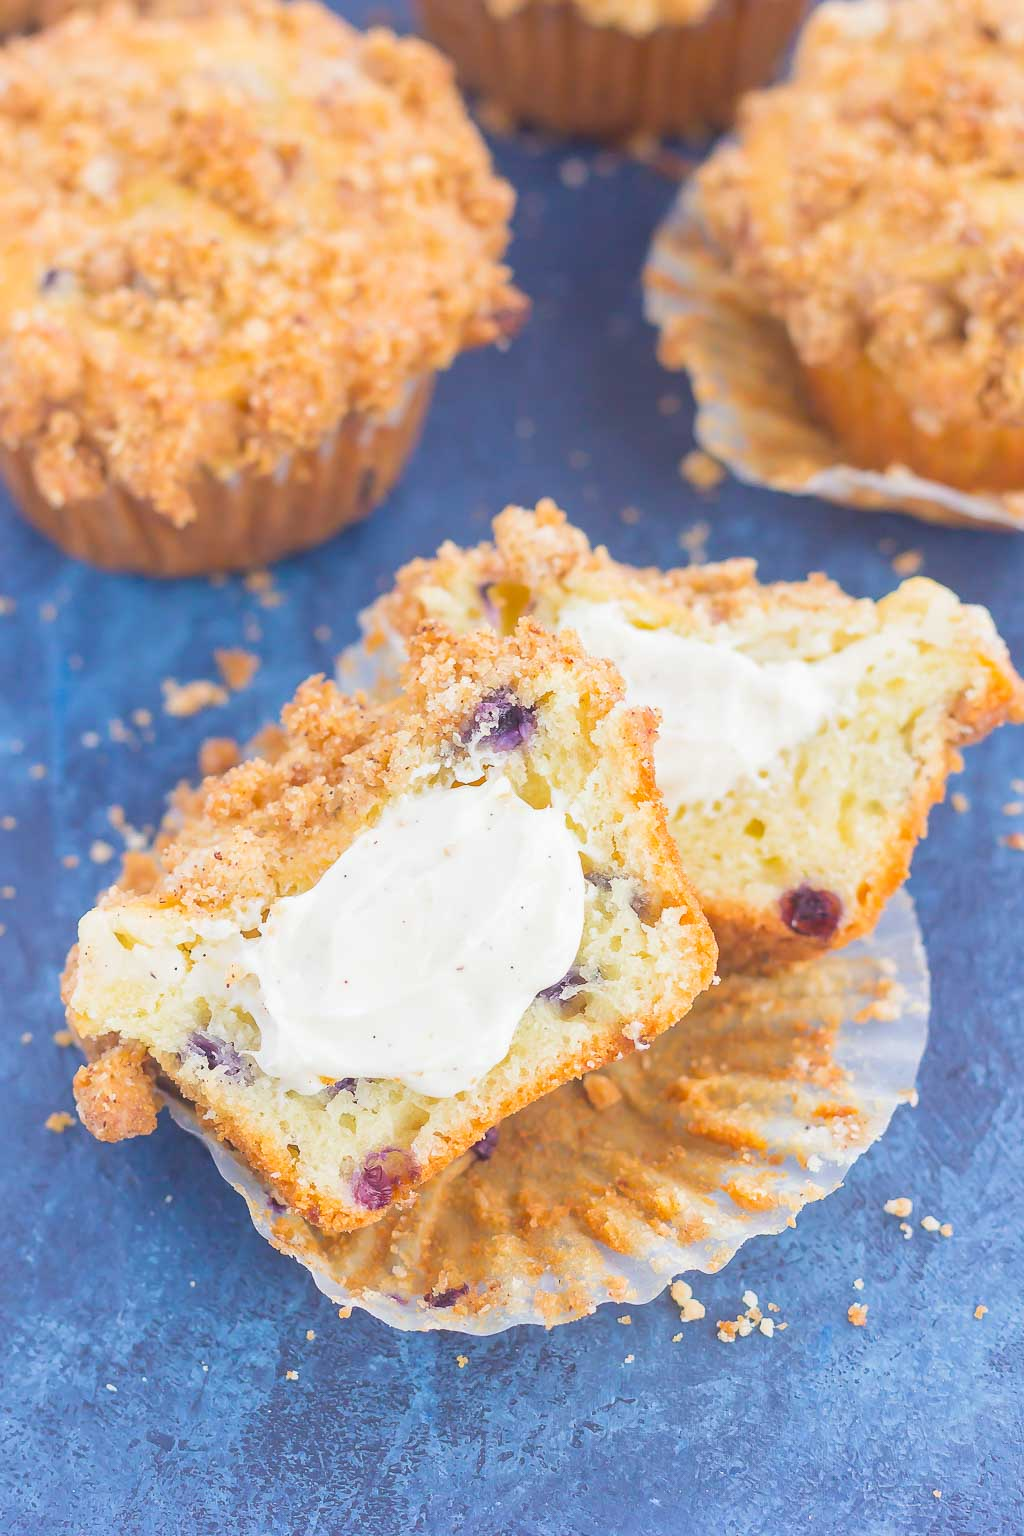 These Blueberry Cheesecake Muffins make a delicious breakfast or easy dessert. Filled with tangy blueberries, a sweet cheesecake filling and topped with a buttery streusel, these muffins will quickly become everyone's favorite treat!